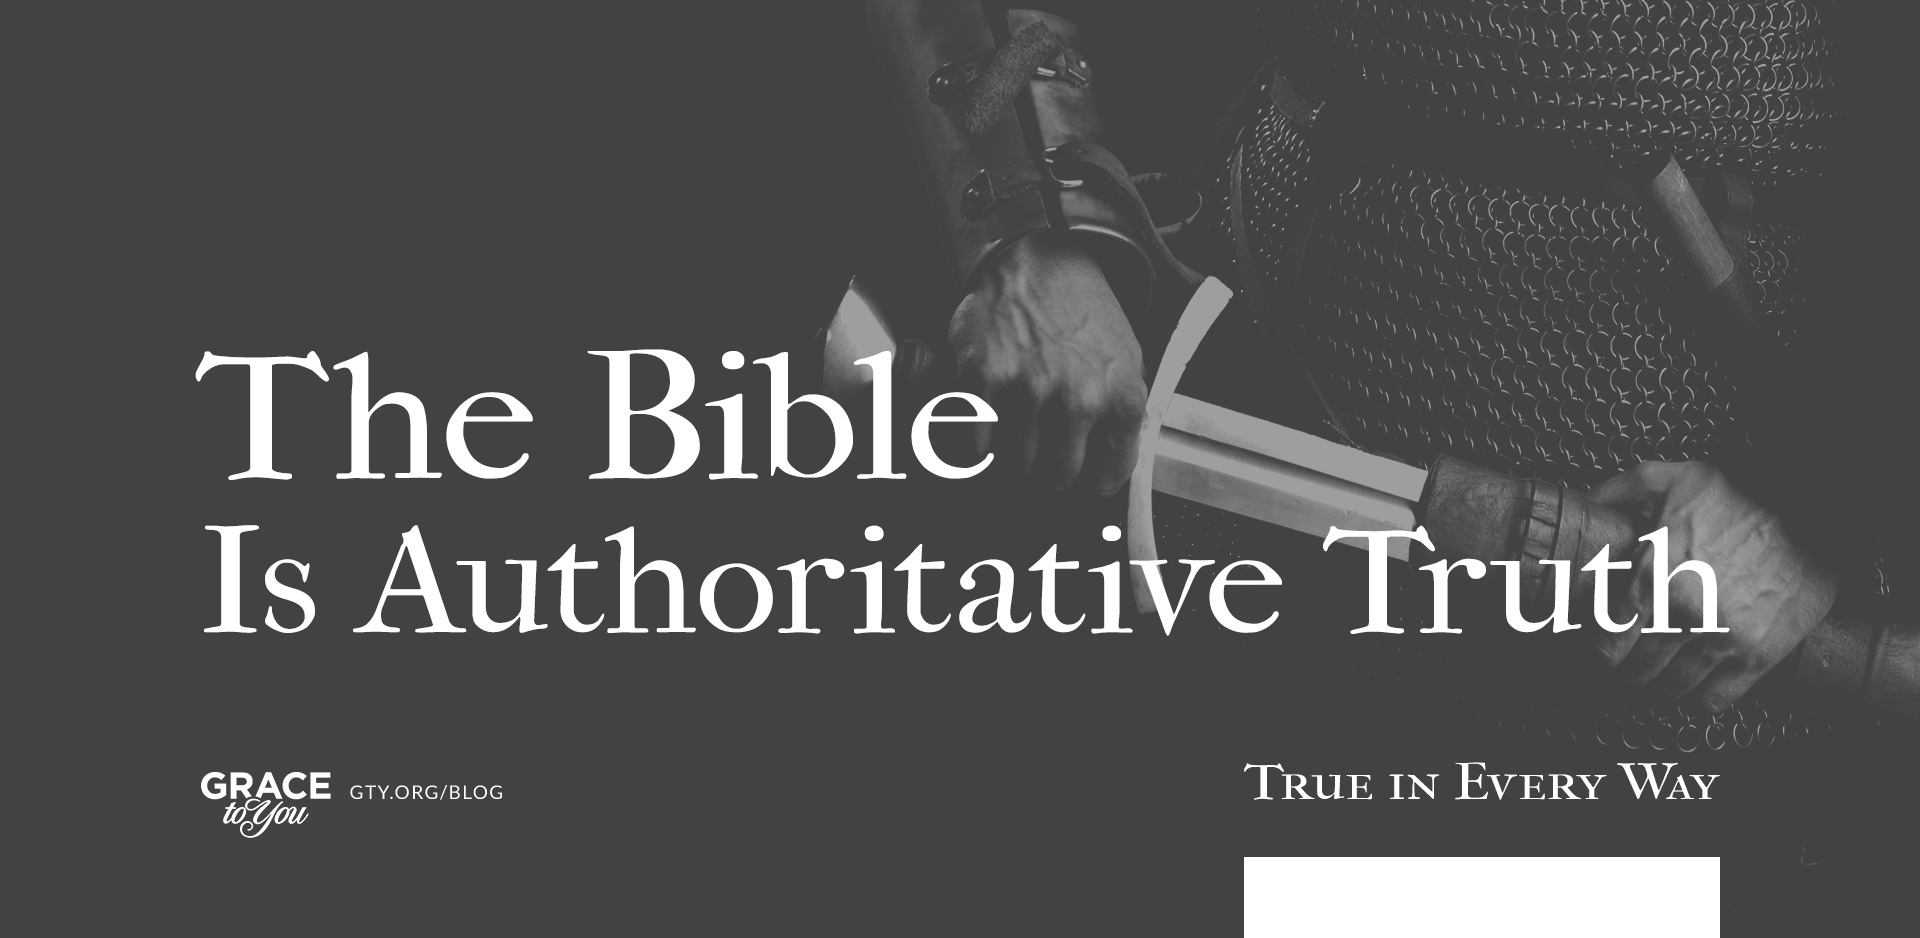 The Bible Is Authoritative Truth